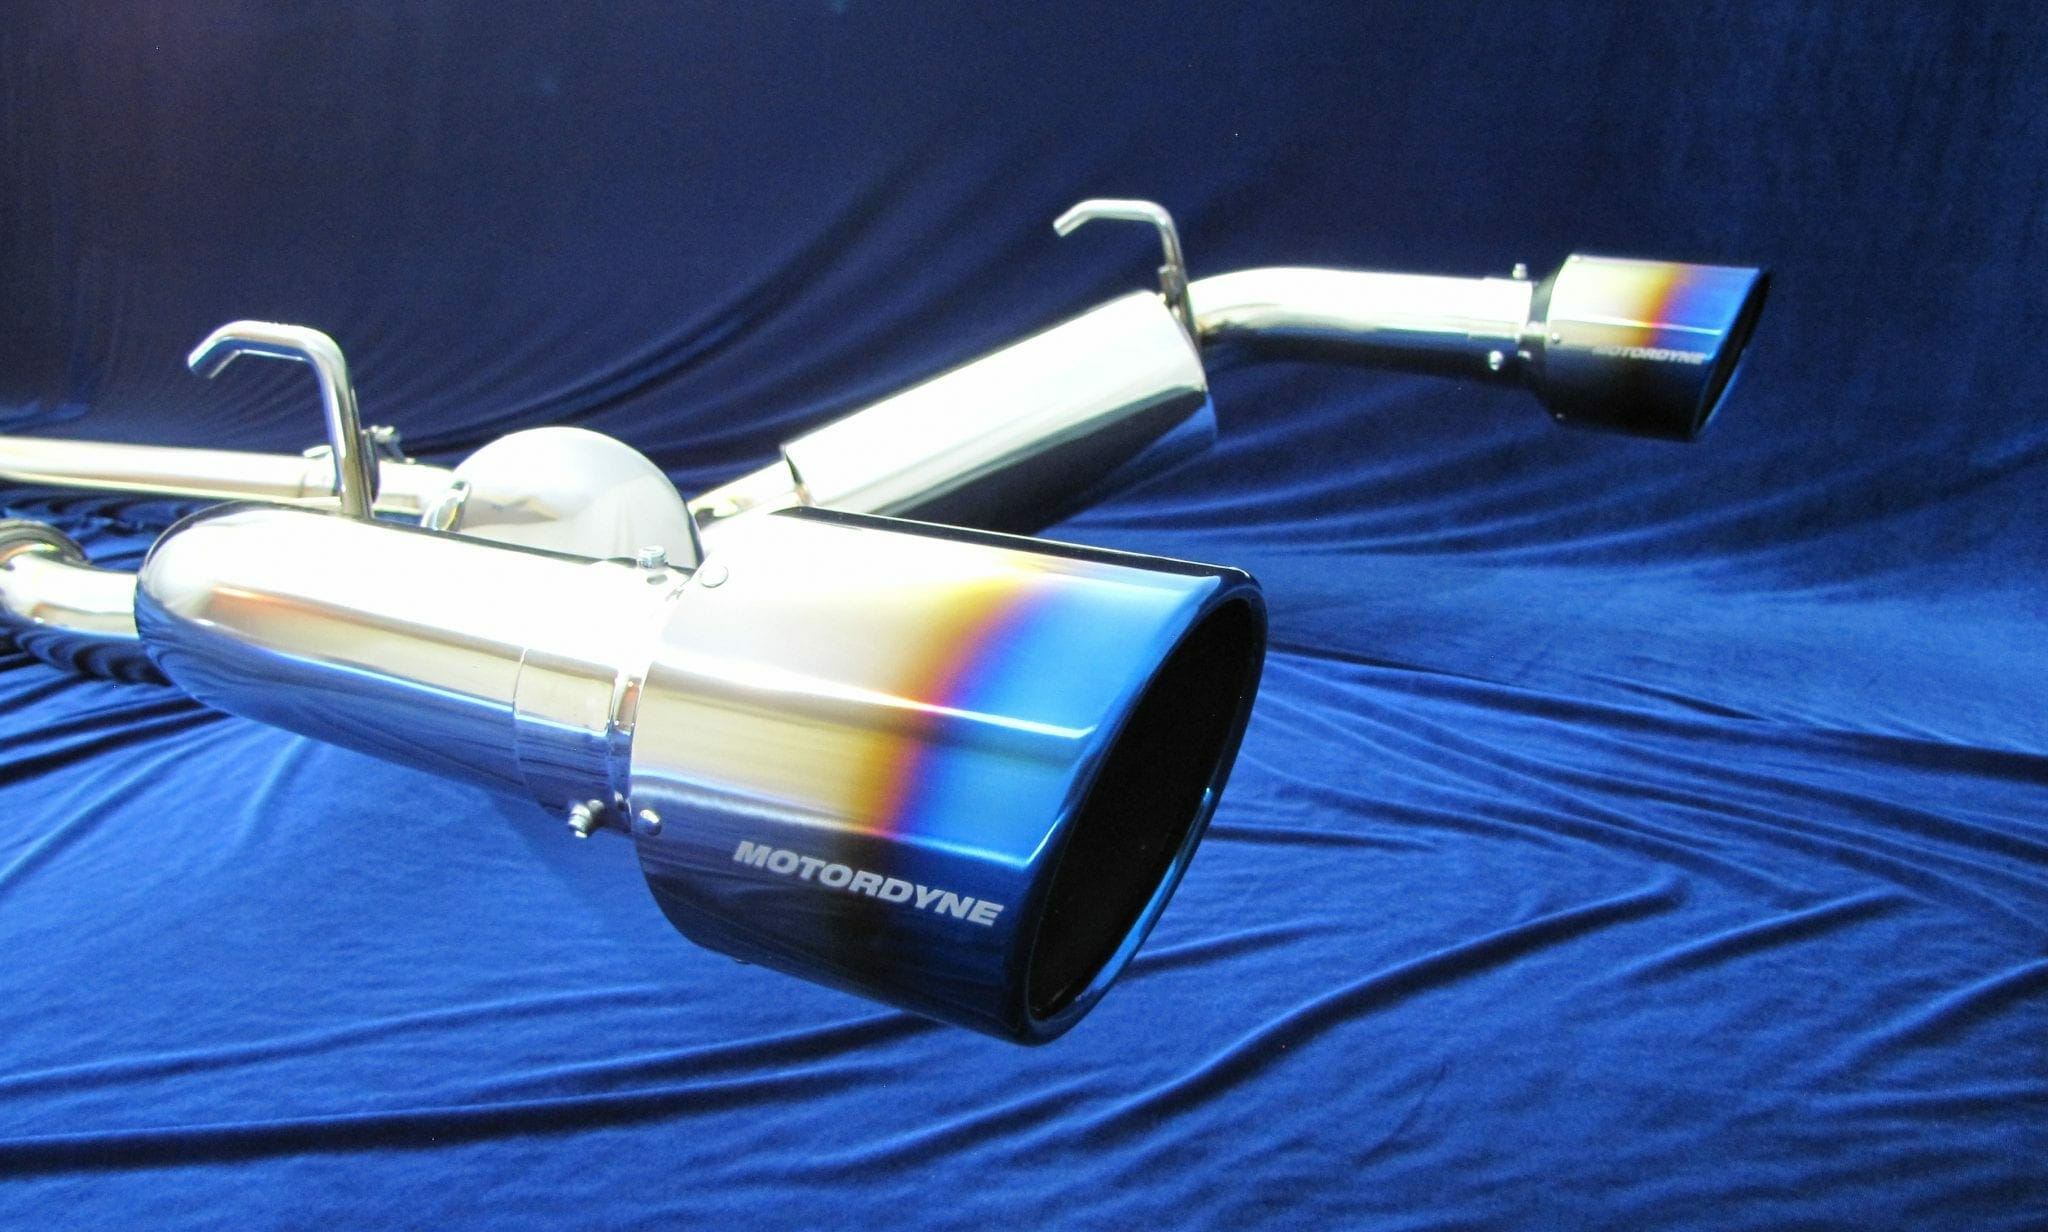 Nissan 370Z Exhaust - Motordyne ShockWave)))